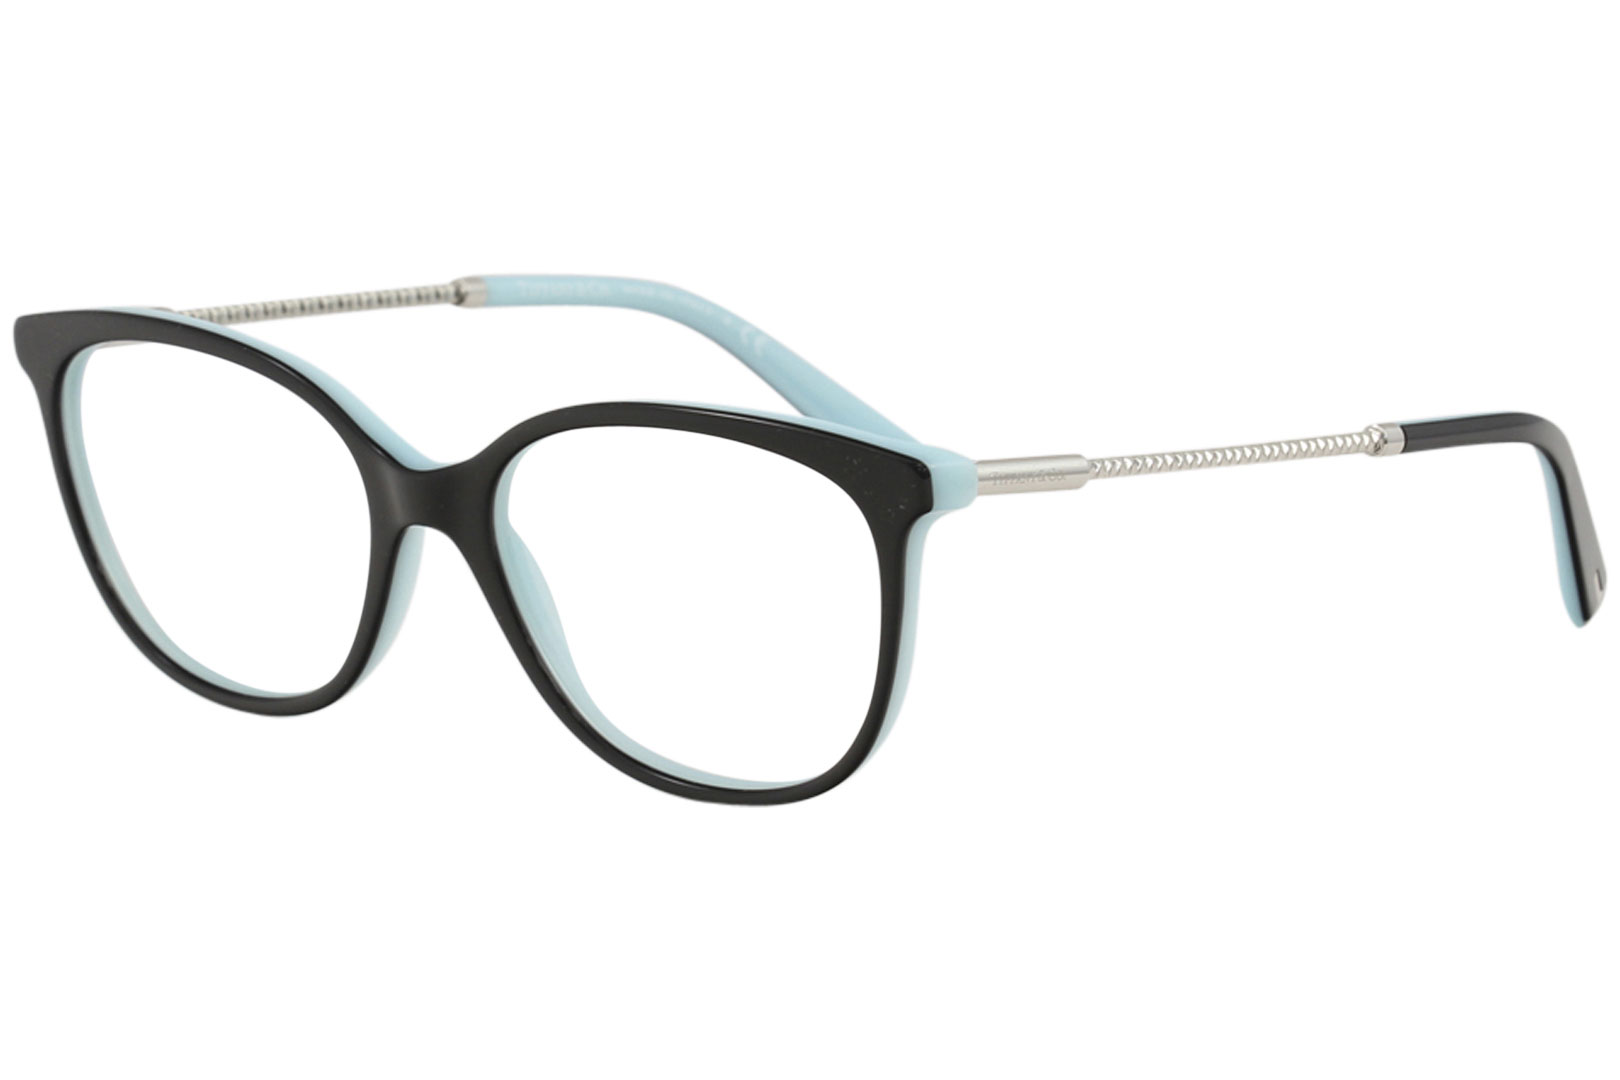 27b4b71acf Tiffany   Co. Eyeglasses TF2168 TF 2168 8055 Black Full Rim Optical ...